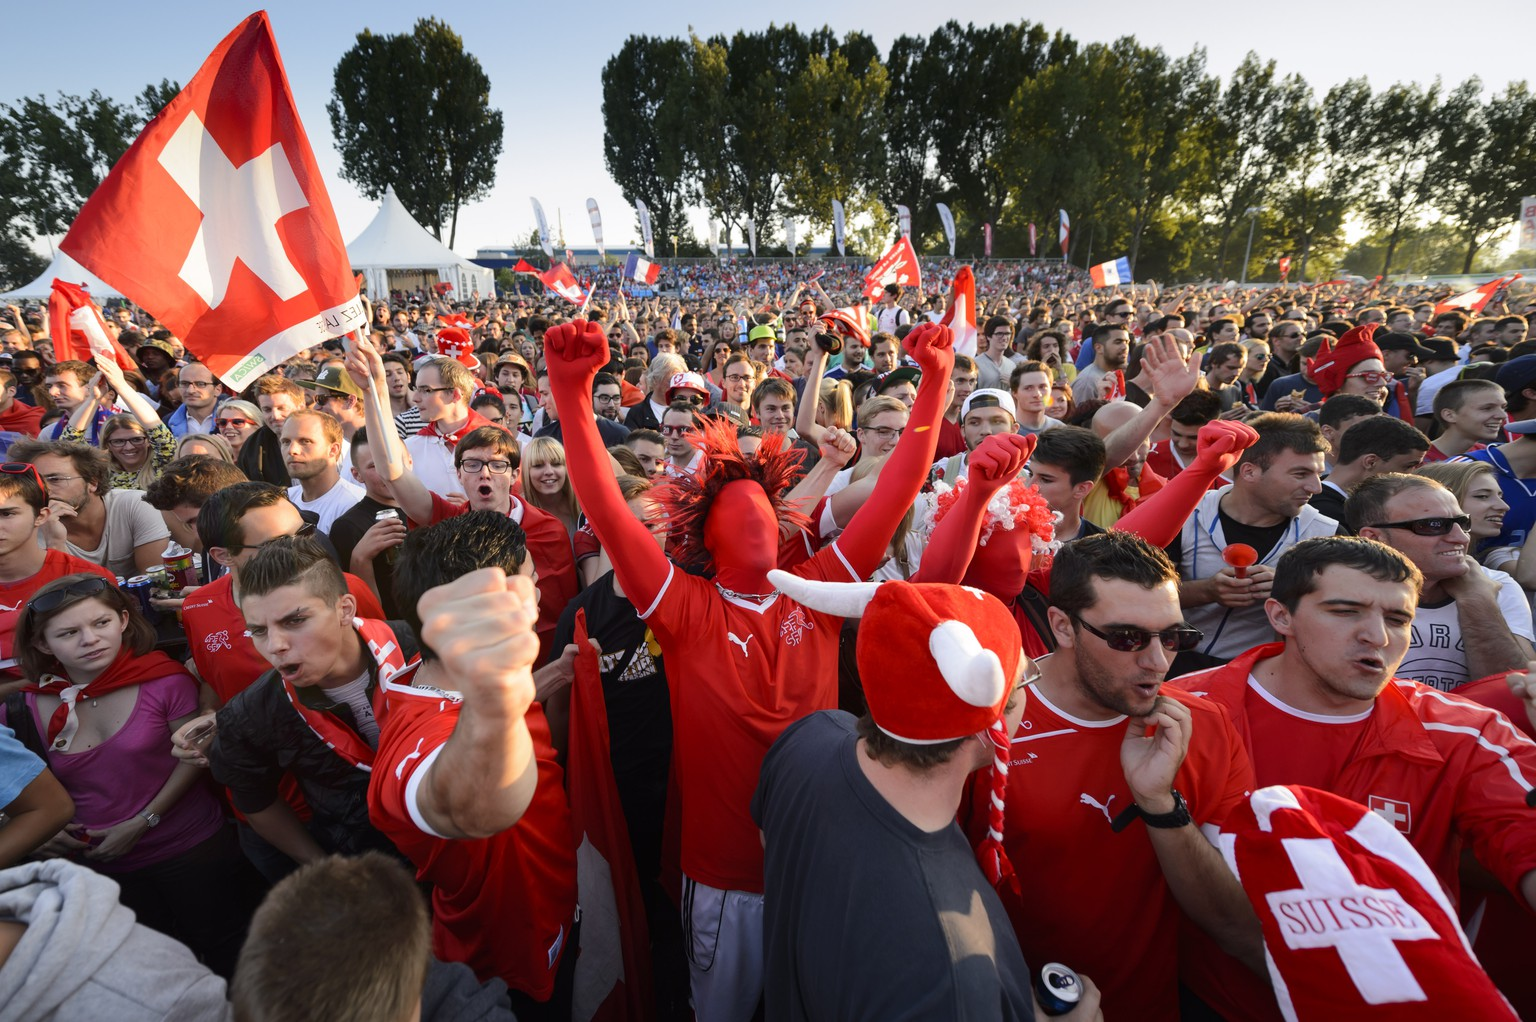 Swiss soccer fans cheer during the live broadcast of the Brazil Soccer FIFA World Cup match between Switzerland and France at the public viewing zone in Lausanne, Switzerland, Friday, June 20, 2014. (KEYSTONE/Laurent Gillieron)